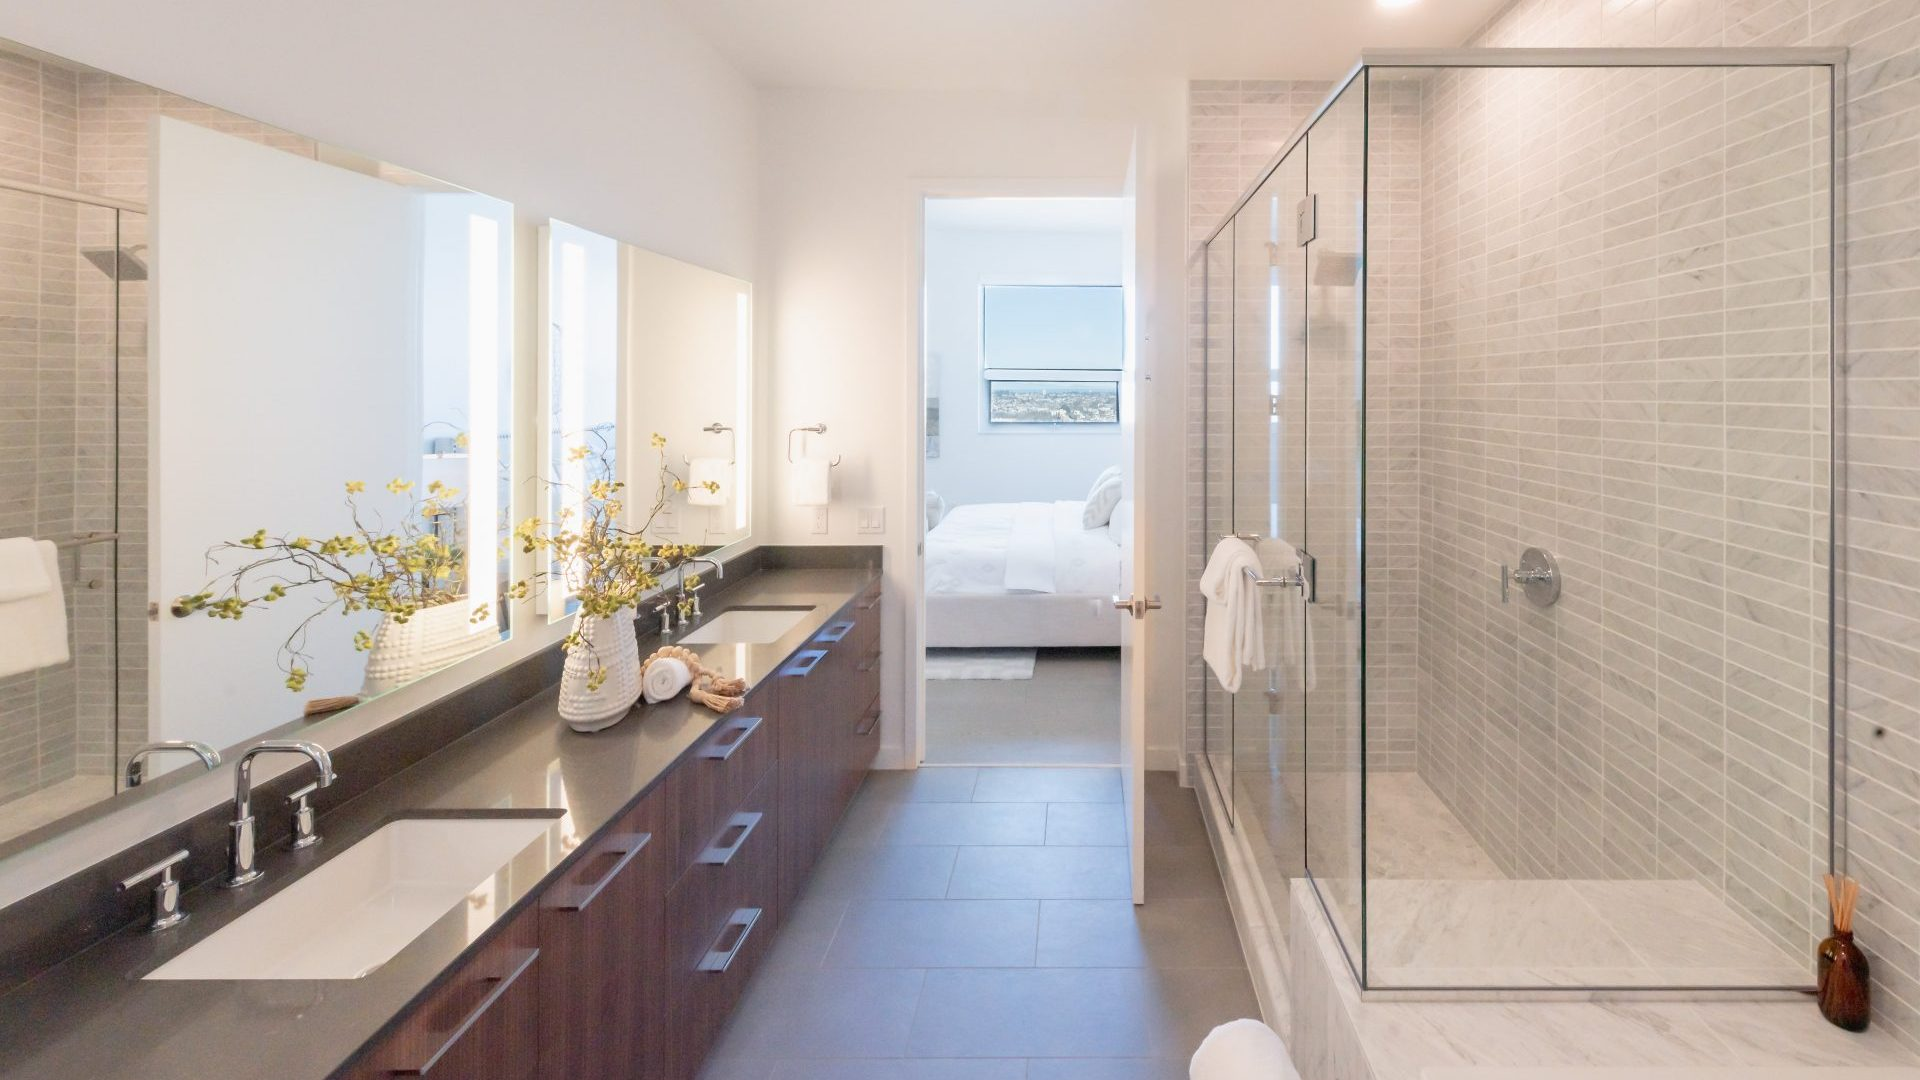 Spacious Bathroom Layouts At Arrivé Apartments in Seattle, WA